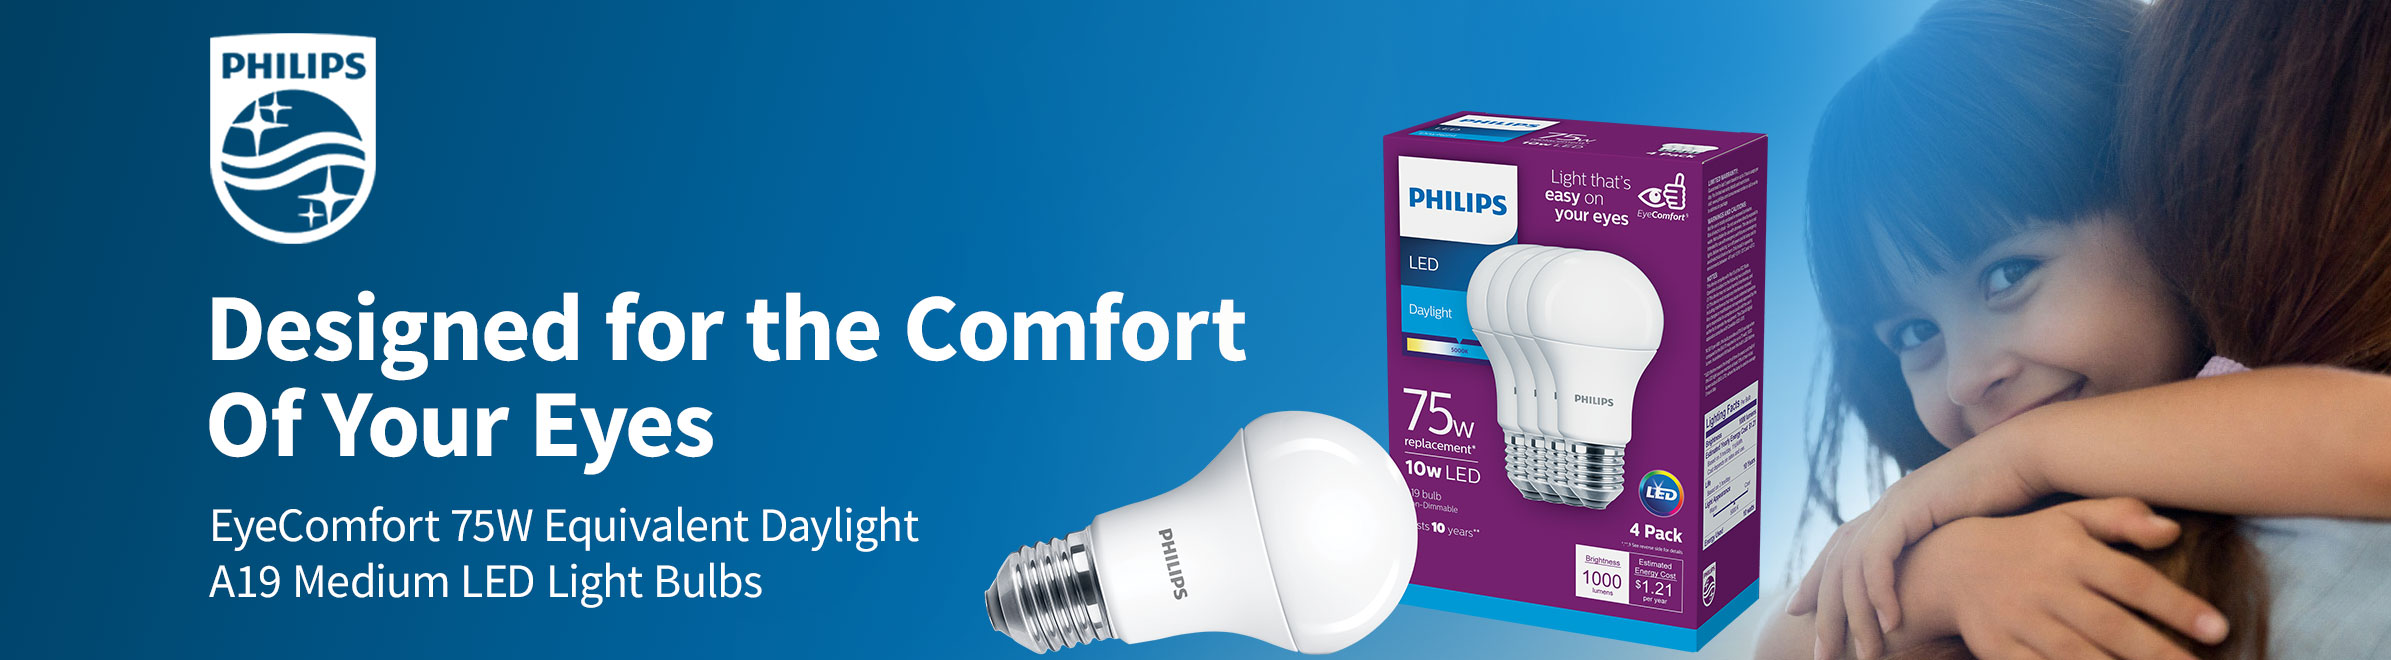 Philips LED Lightbulbs